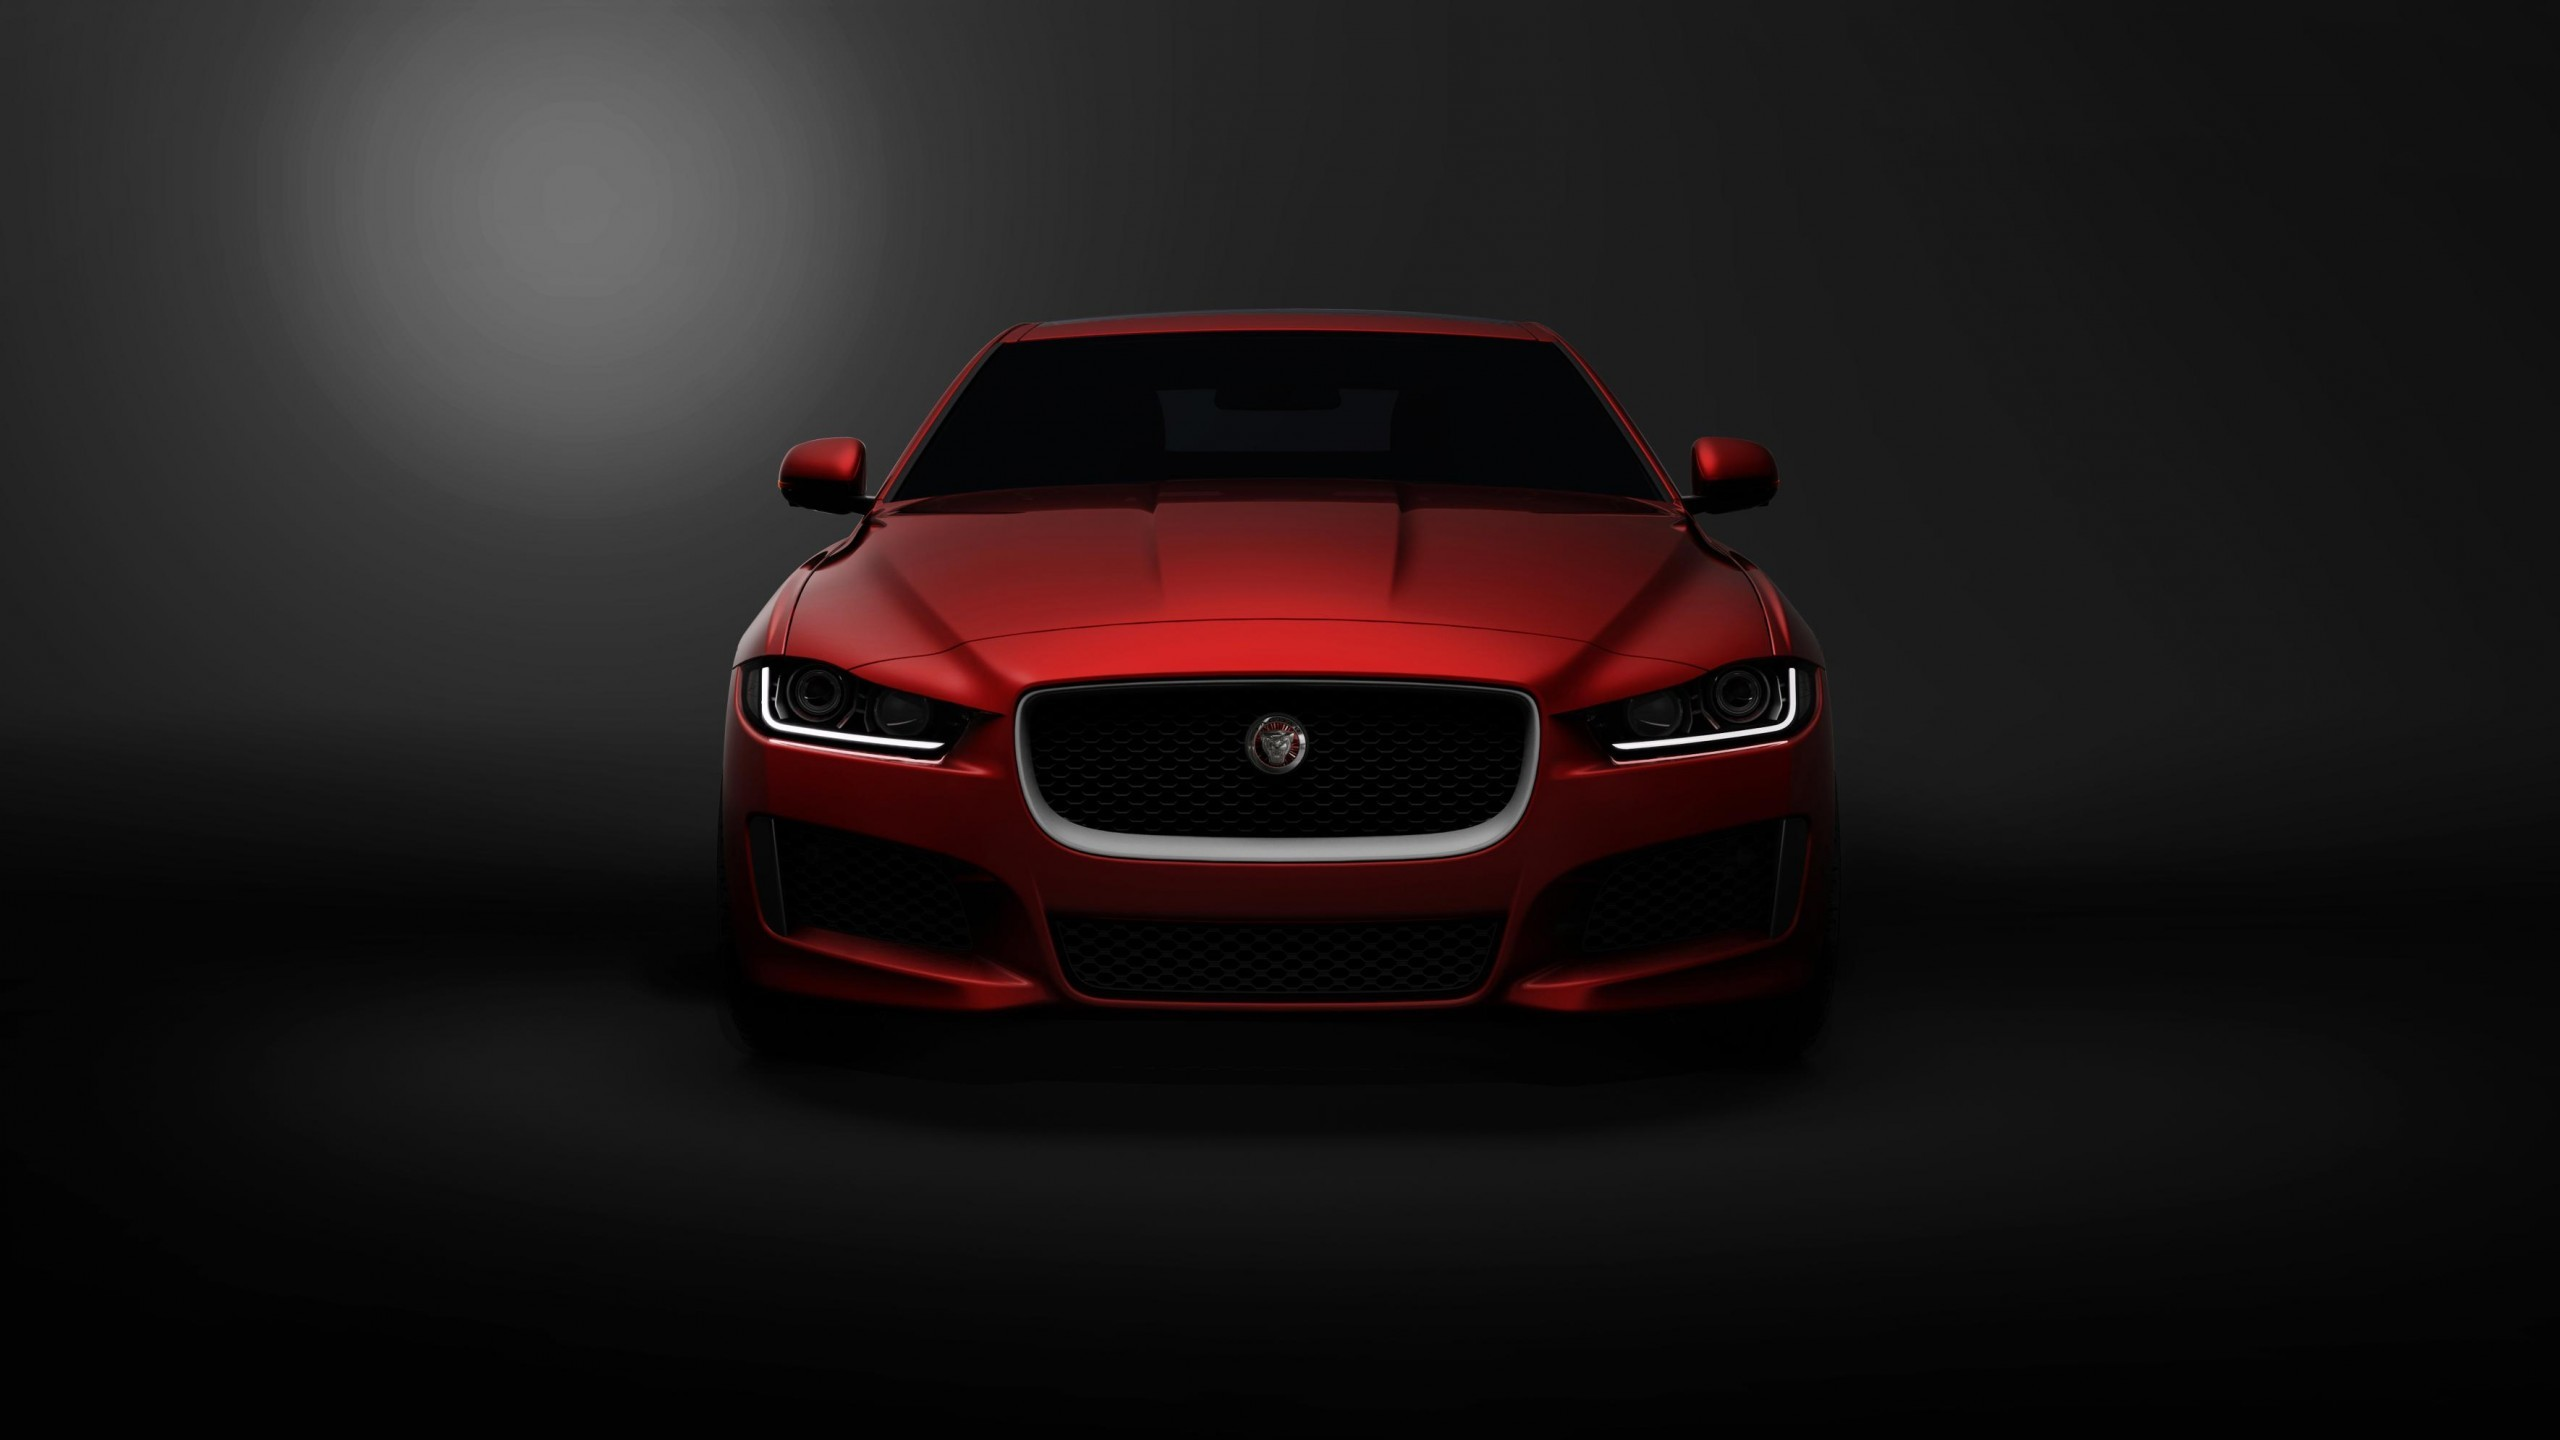 Data Src Jaguar Logo Wallpapers Macbook Car Wallpapers Black Background 2560x1440 Download Hd Wallpaper Wallpapertip